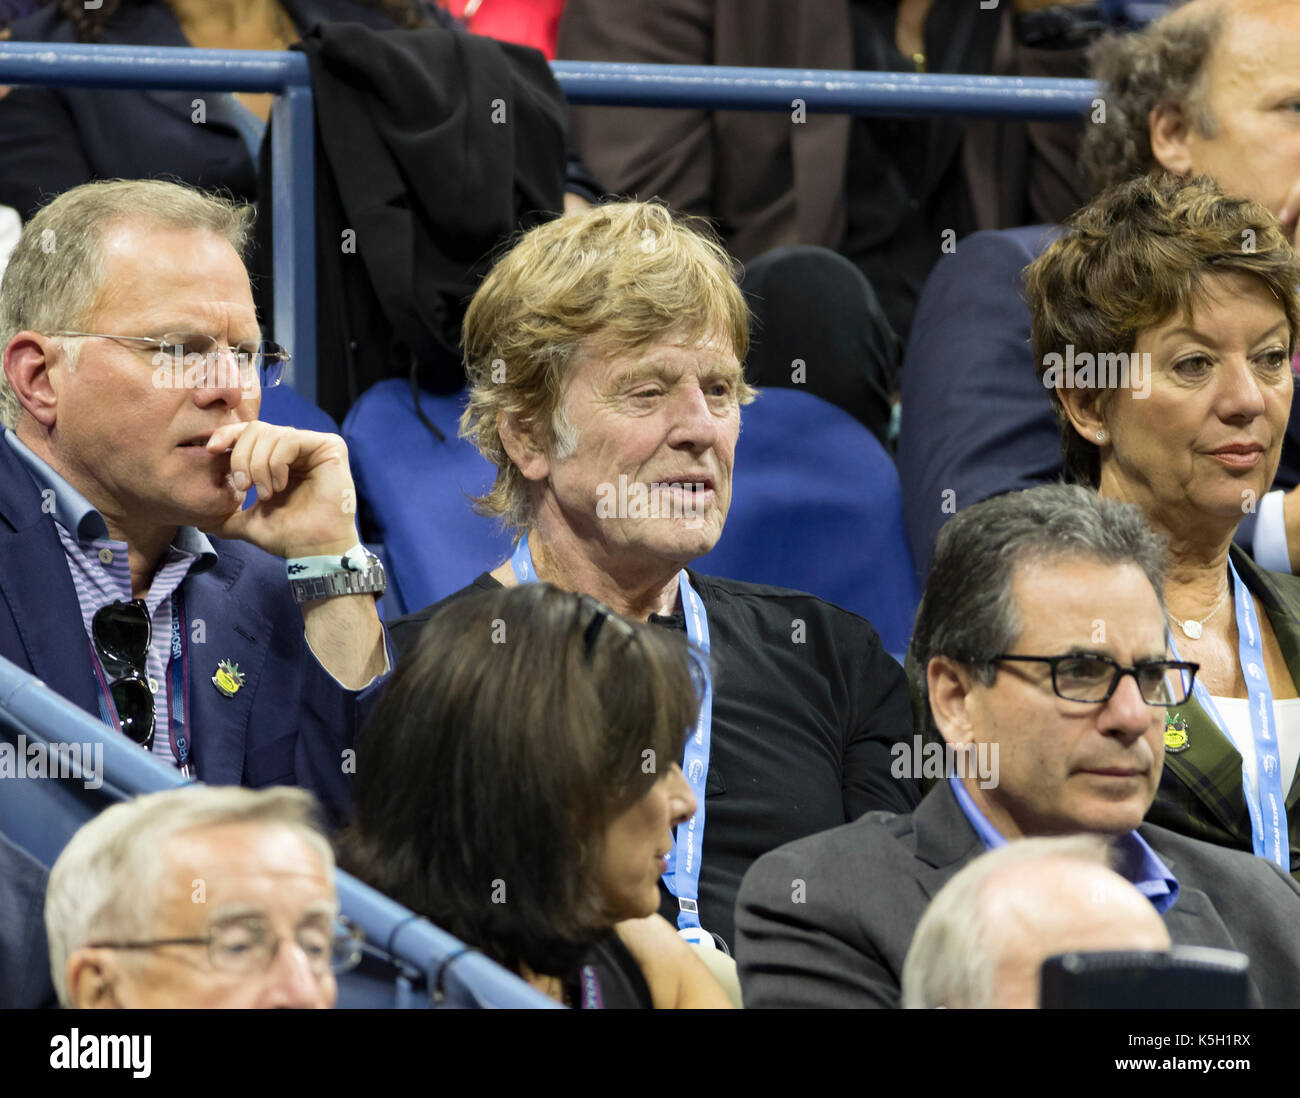 New York, United States. 08th Sep, 2017. Robert Redford attends day 12 of US Open Championships at Billie Jean King National Tennis Center Credit: Lev Radin/Pacific Press/Alamy Live News - Stock Image